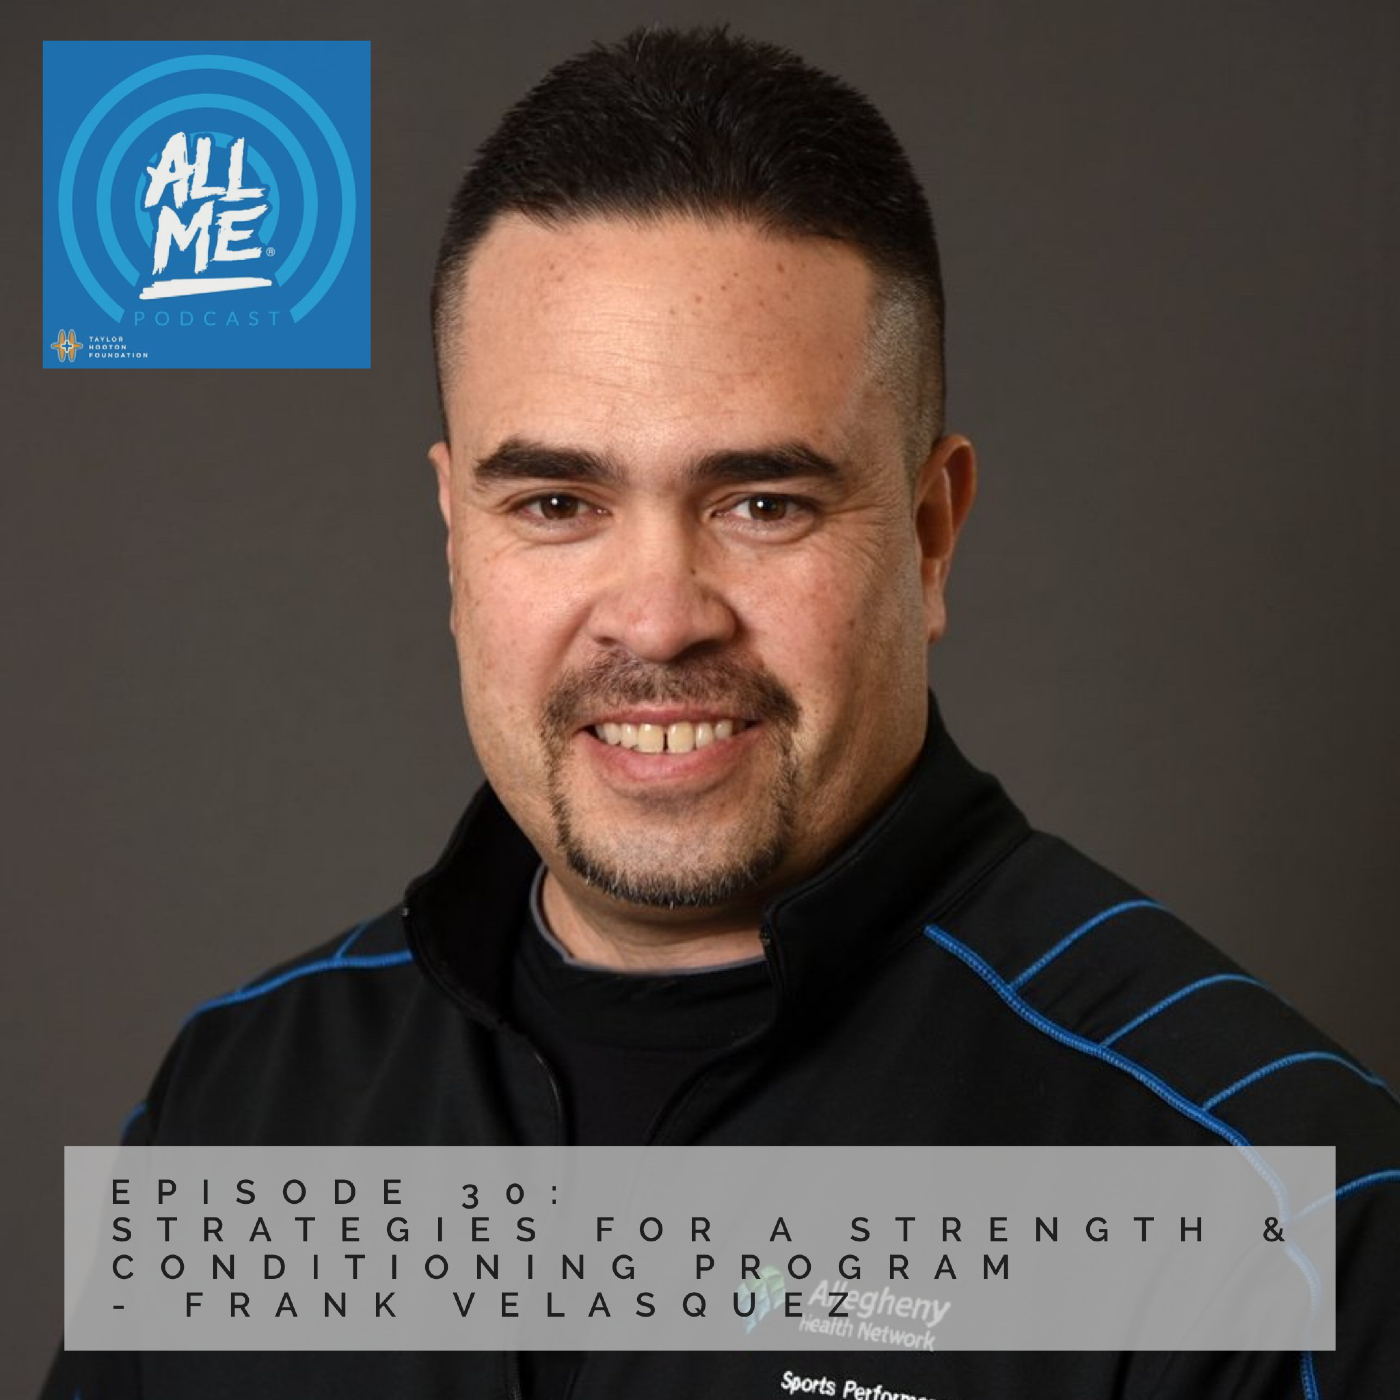 Episode 30: Strategies for a Strength & Conditioning Program - Frank Velasquez